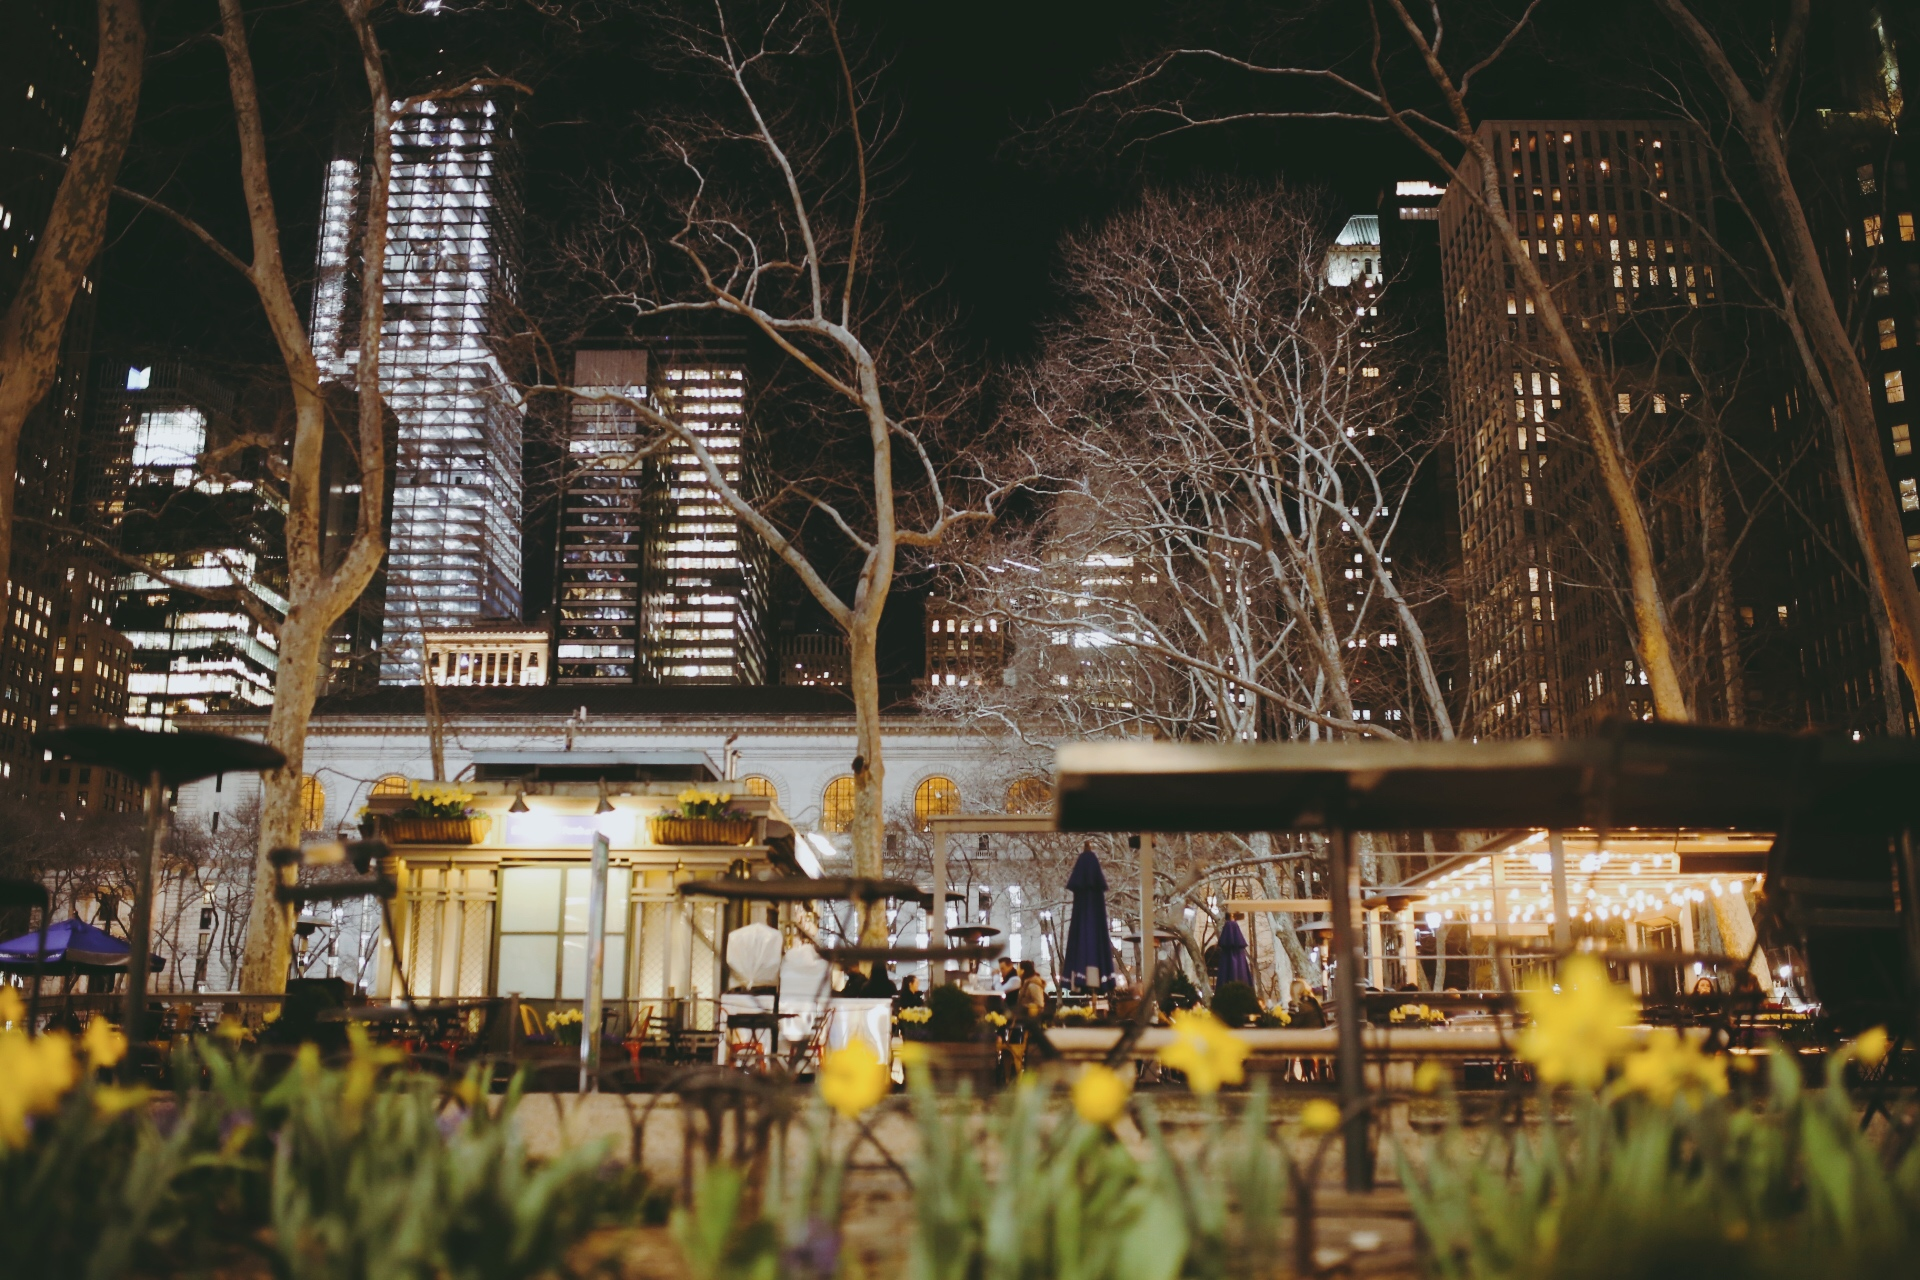 bryant-park-by-night-onmyway.JPG